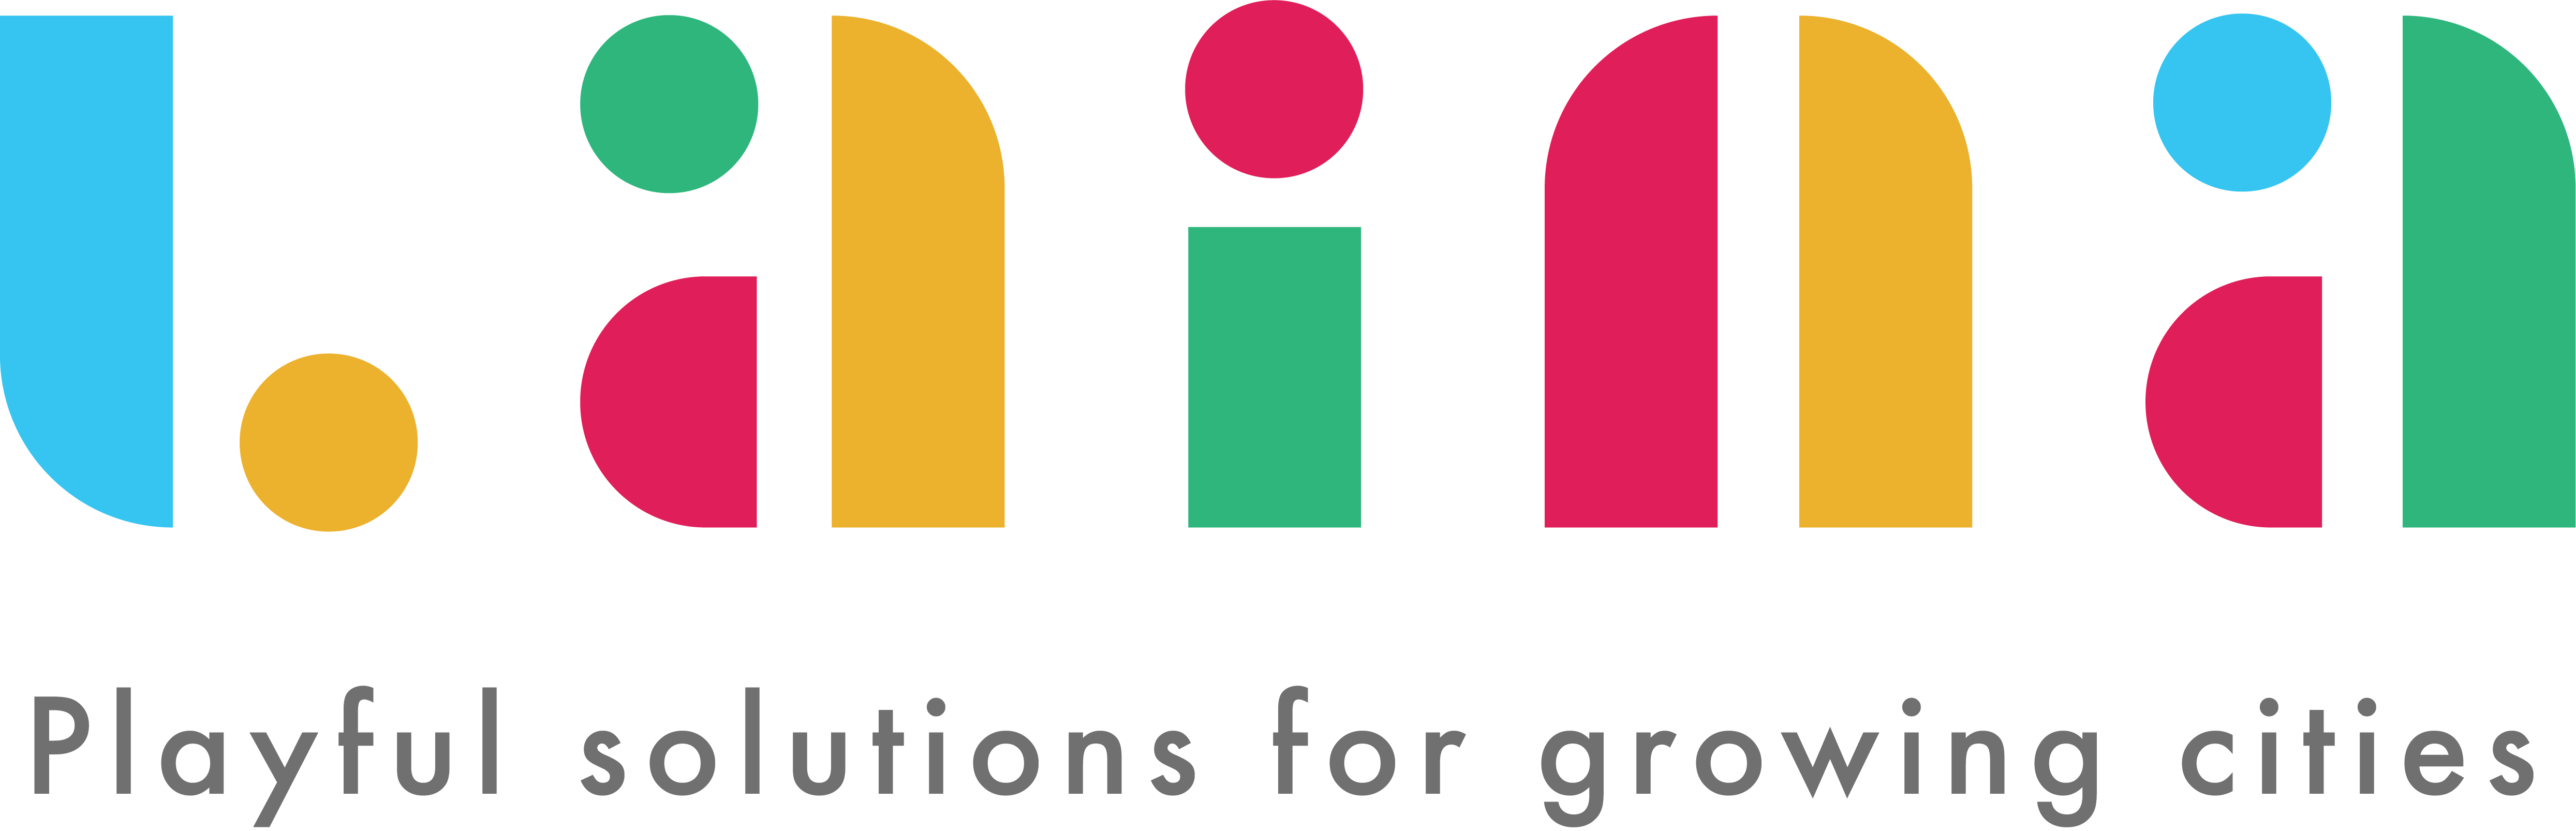 Laina logo playful solution for growing cities